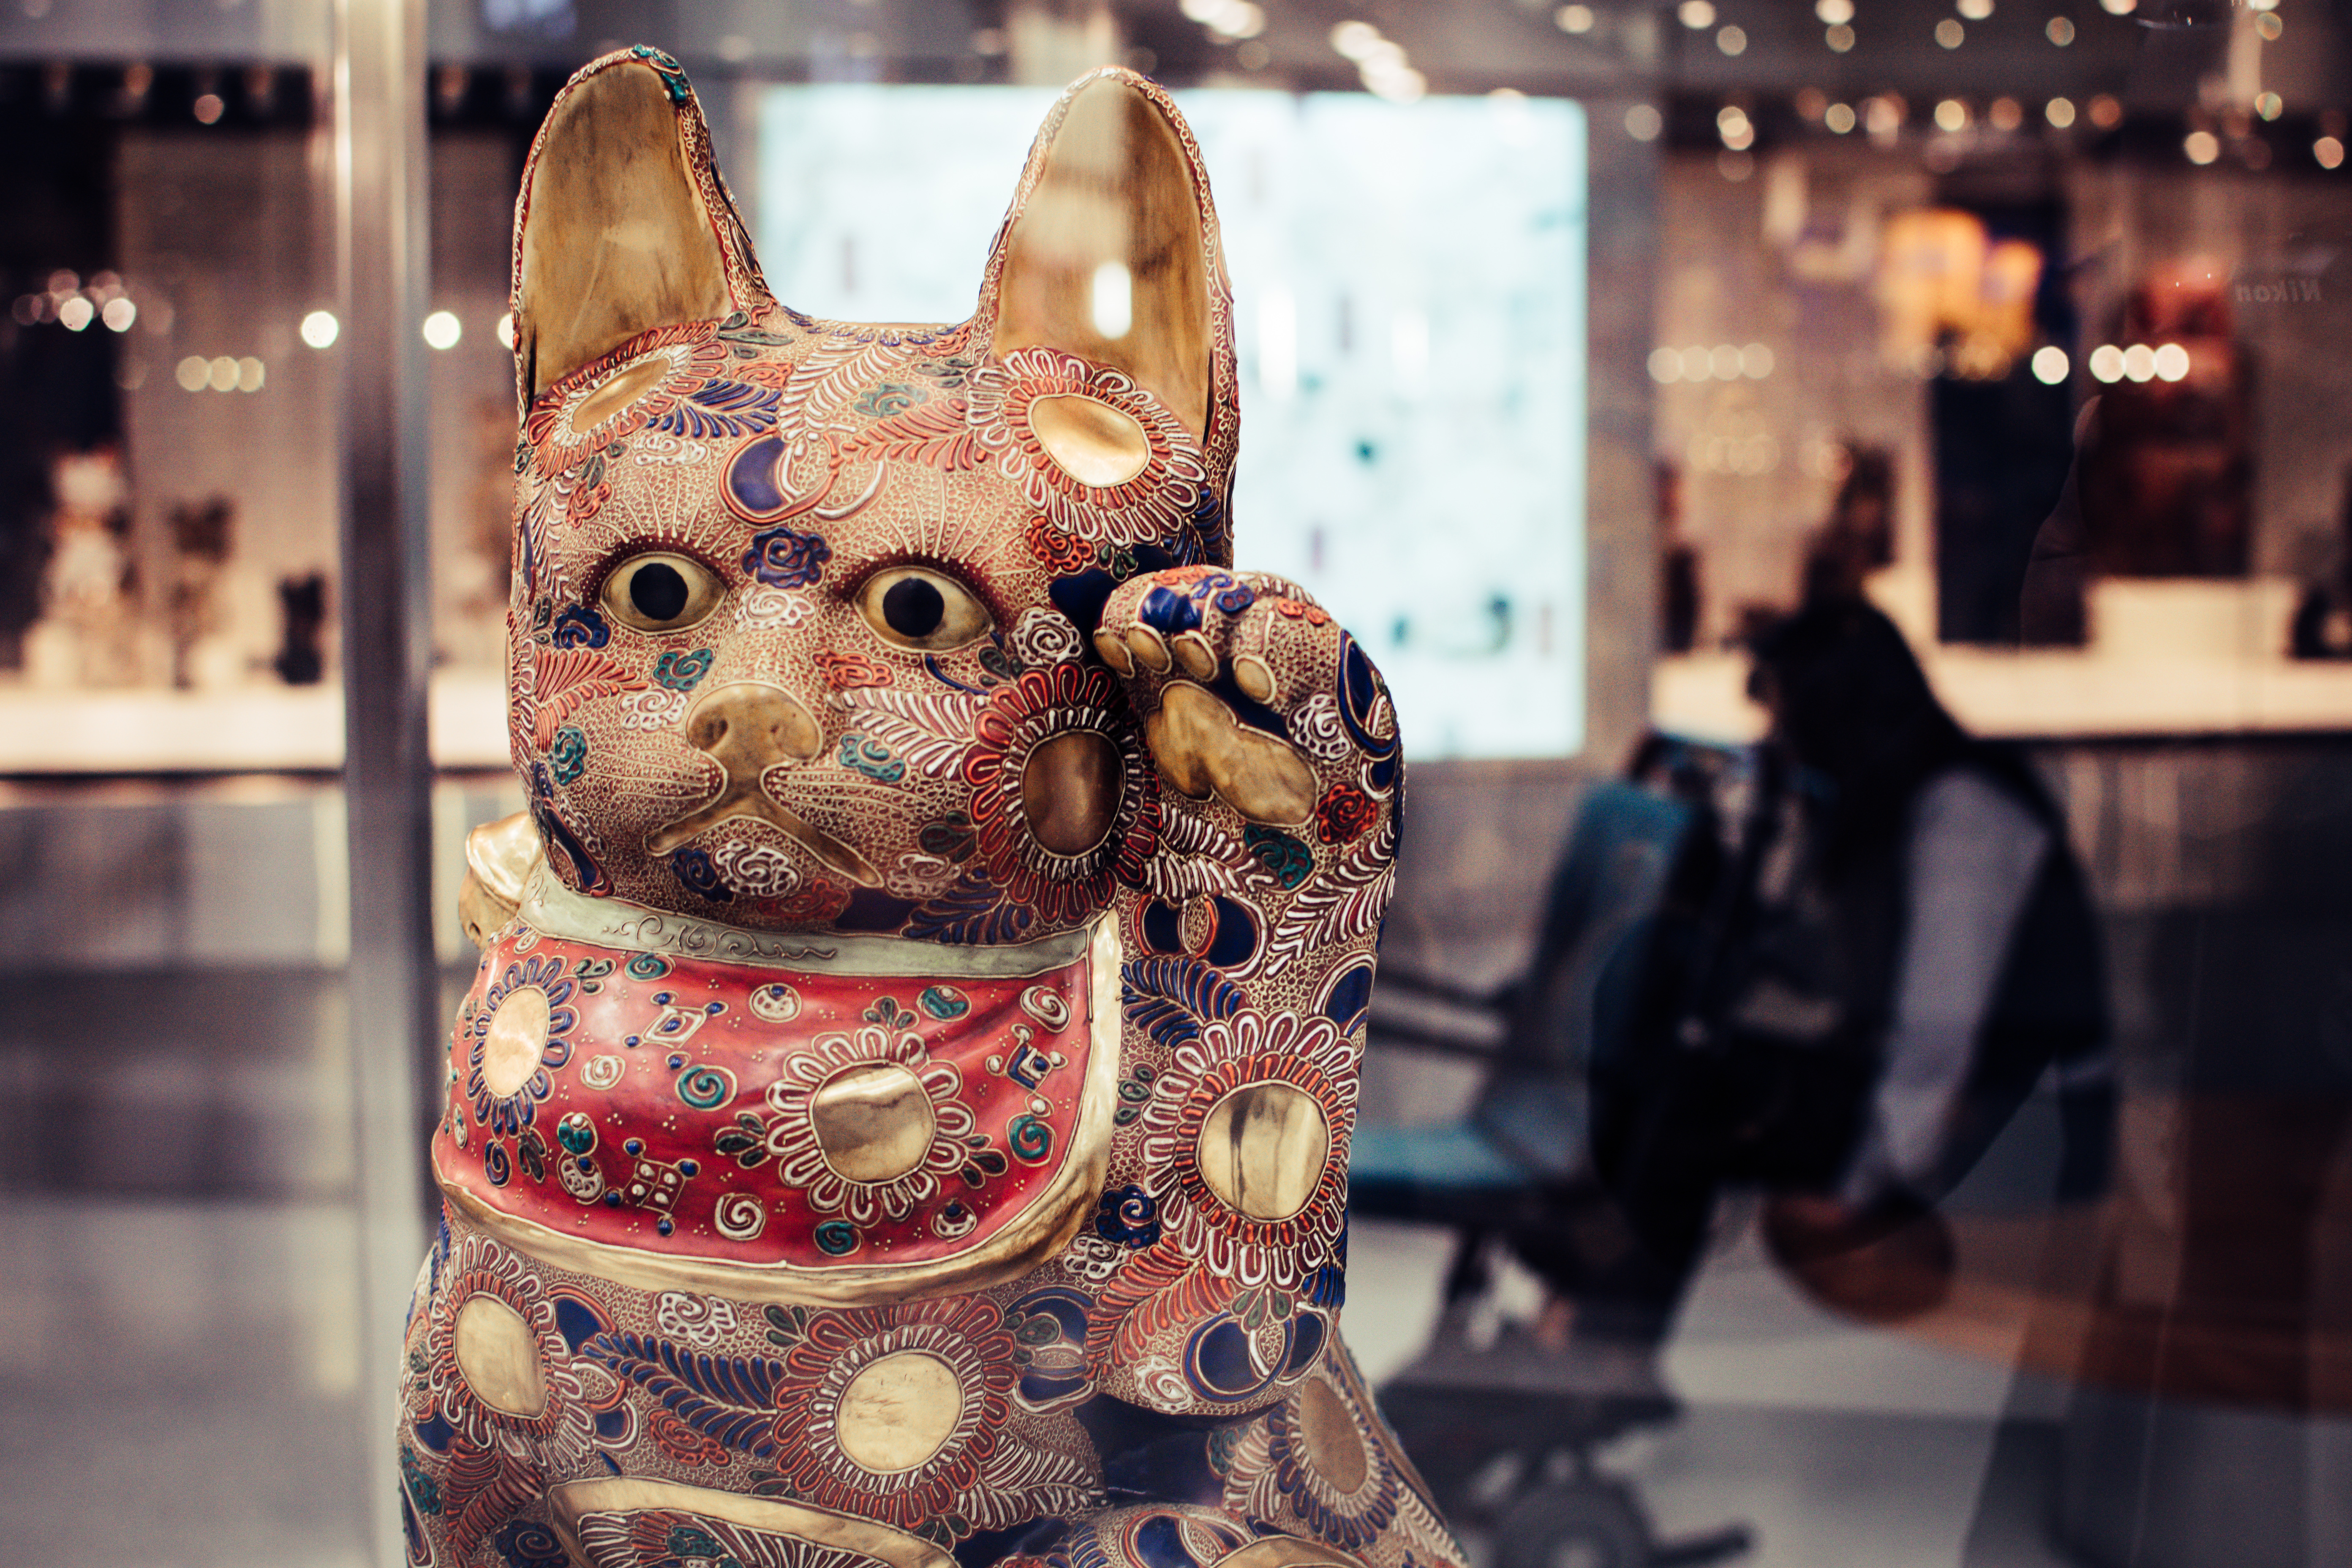 Shallow Focus Photography of Maneki-neko Figurine